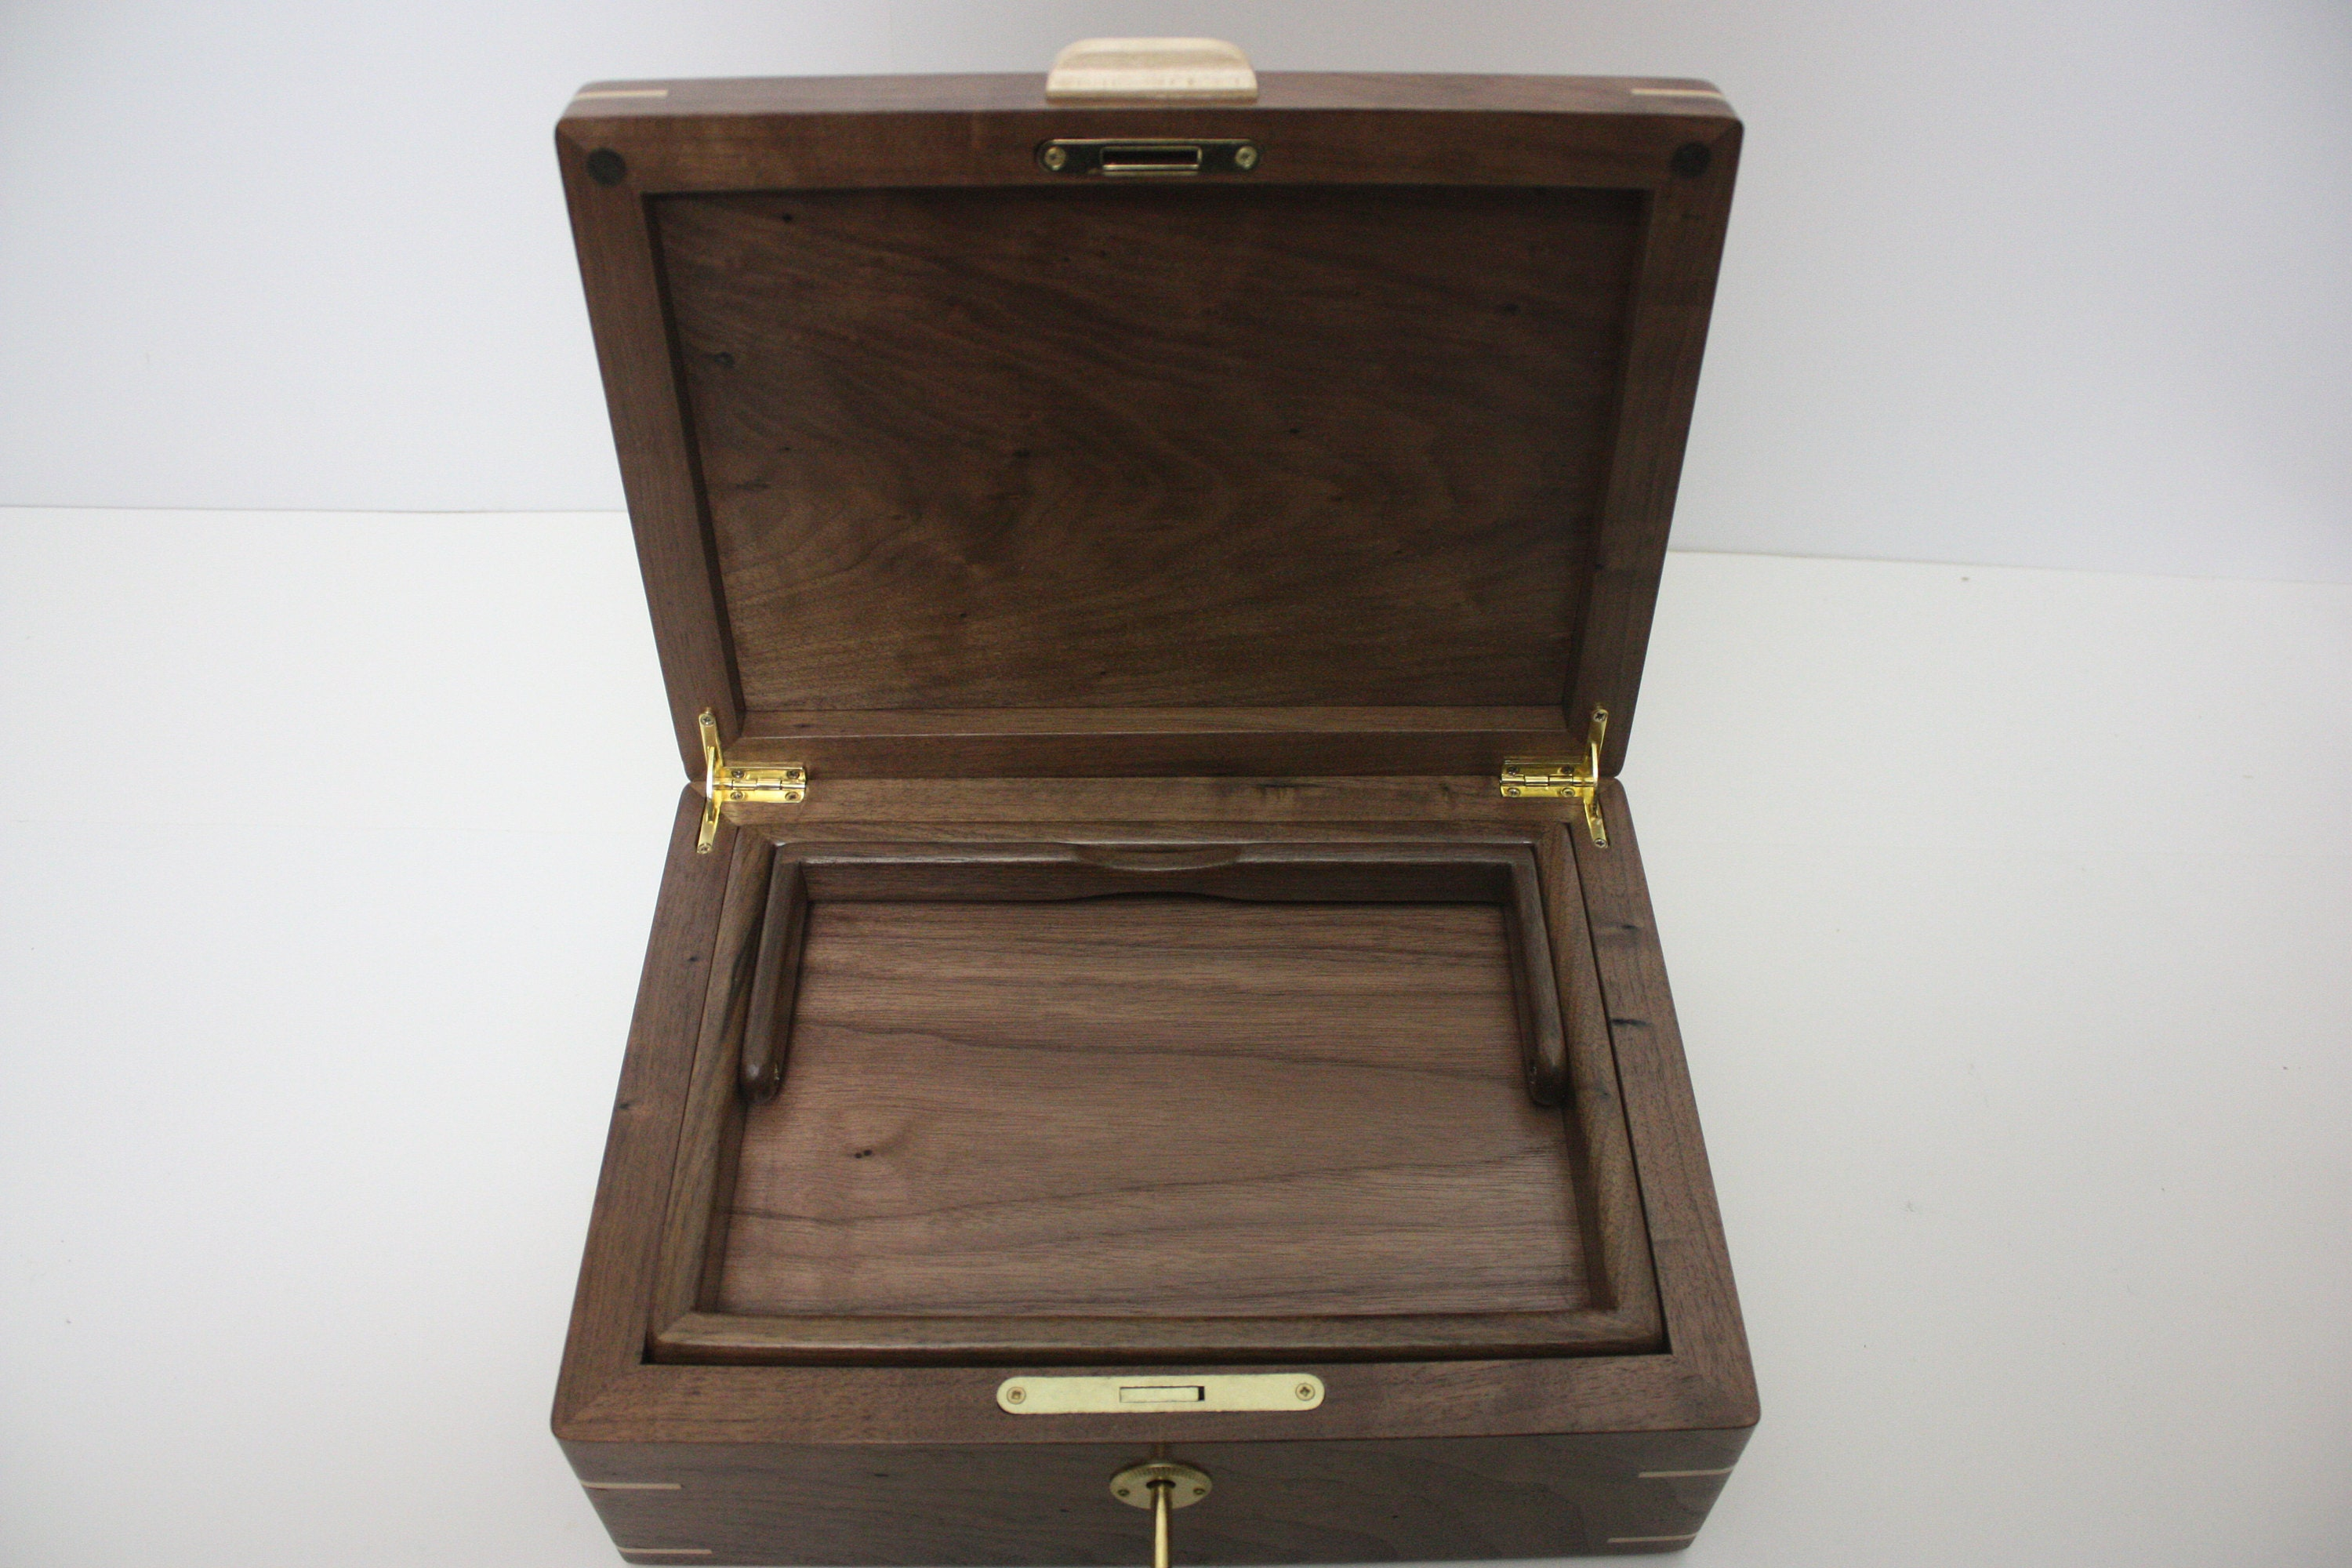 Lift Out Tray in Wooden Box